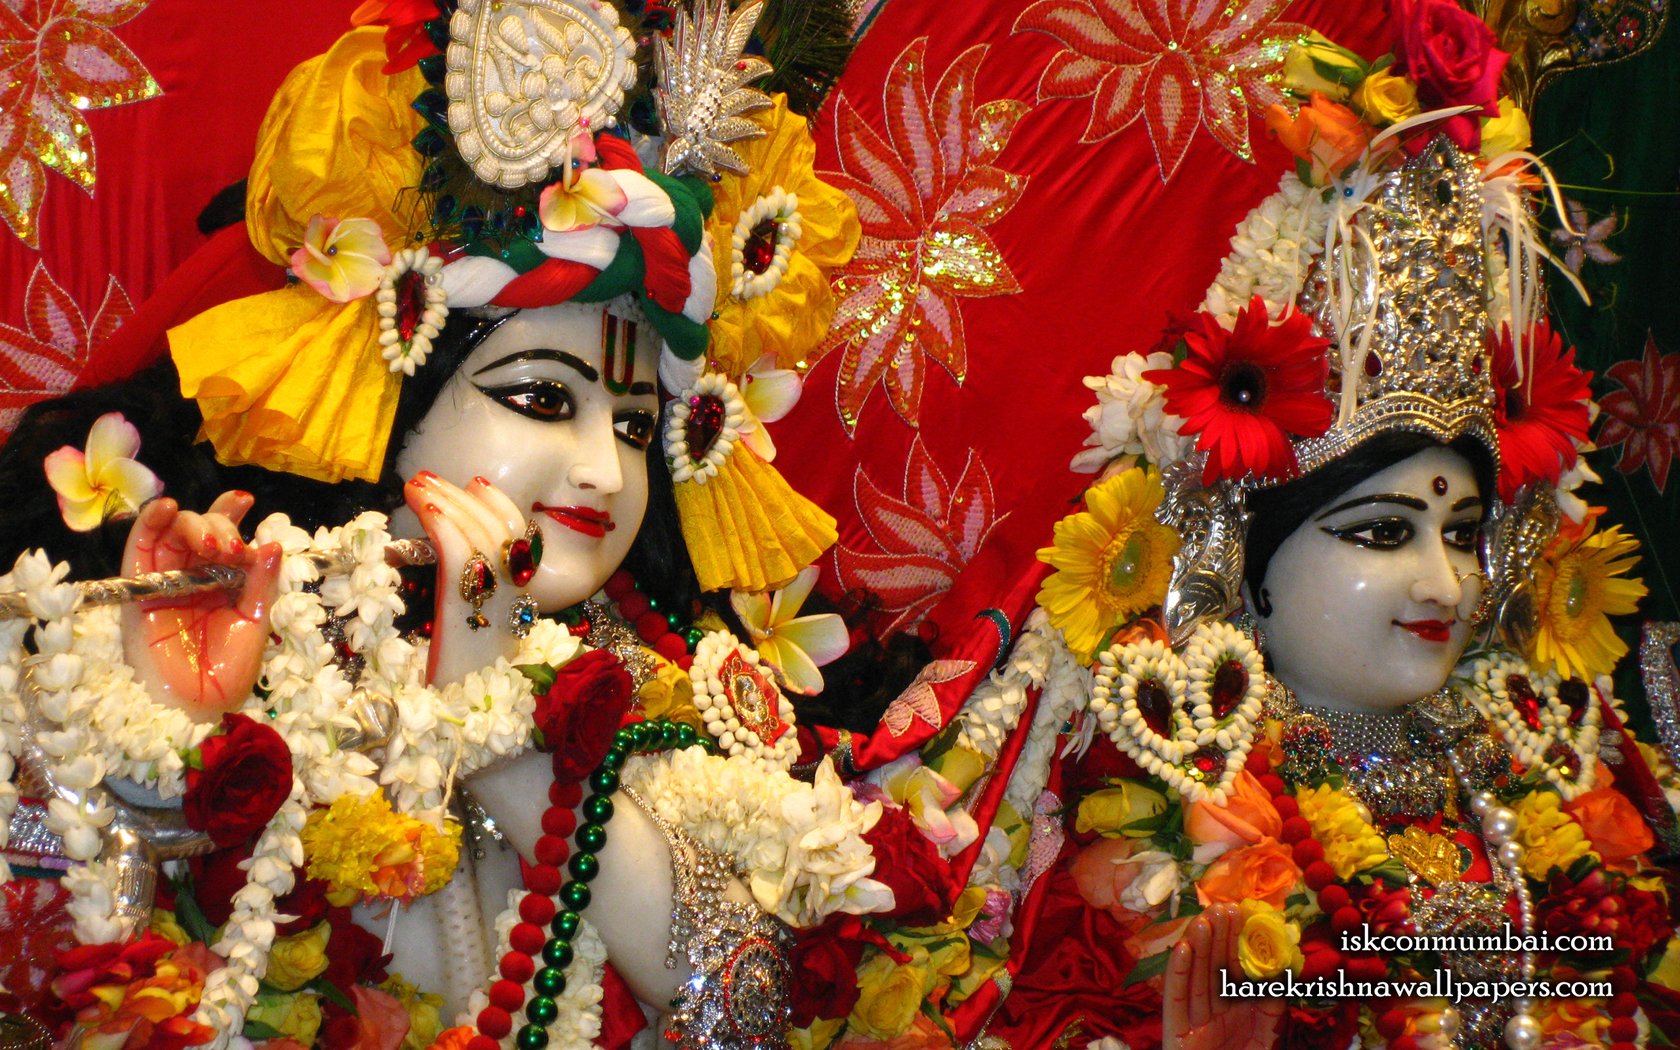 Sri Sri Radha Rasabihari Close up Wallpaper (026) Size 1680x1050 Download